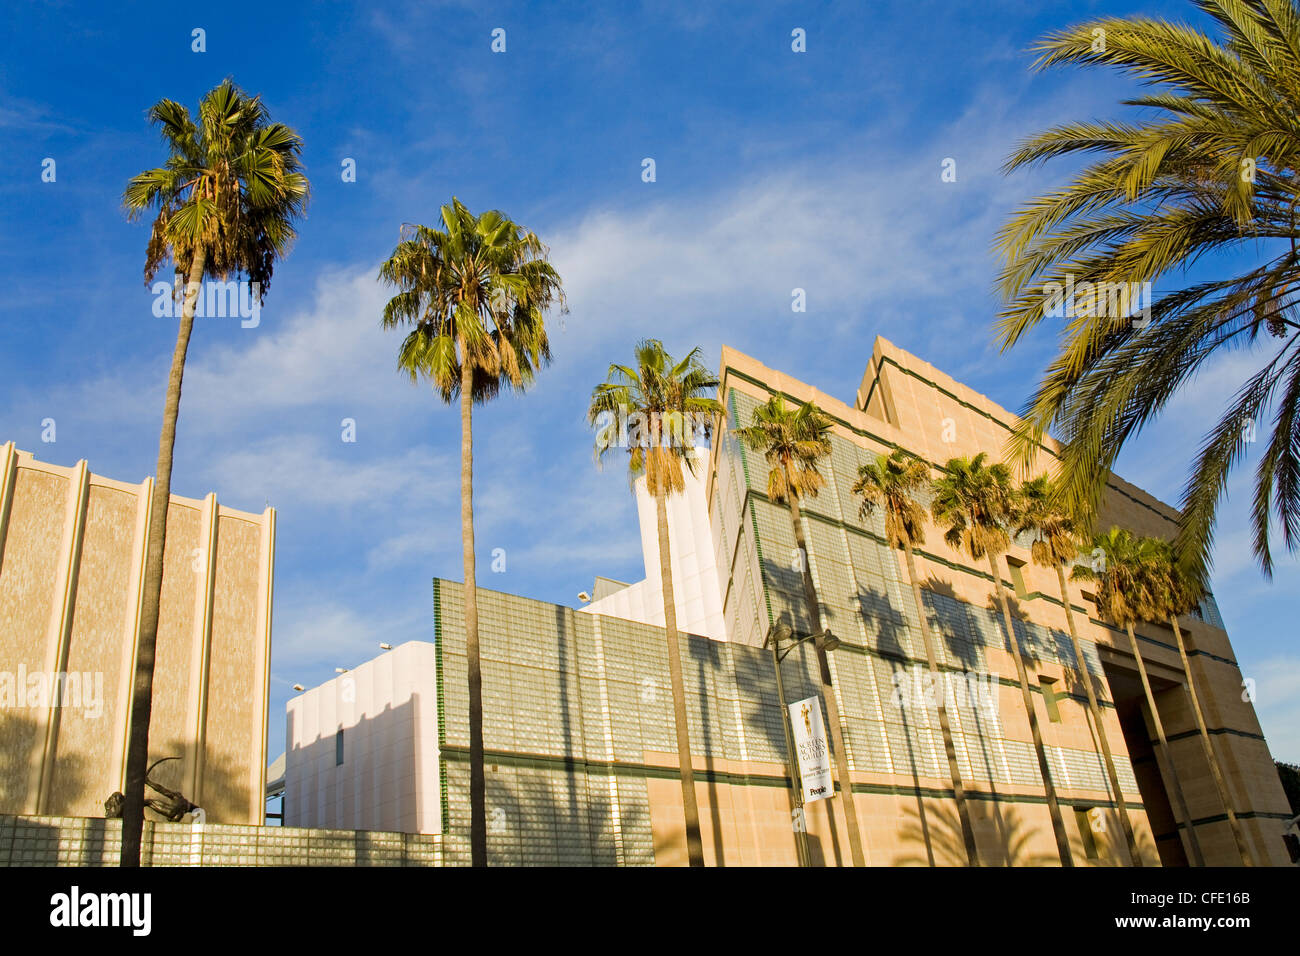 Los Angeles County Museum of Art on Wilshire Boulevard, Los Angeles, California, United States of America - Stock Image